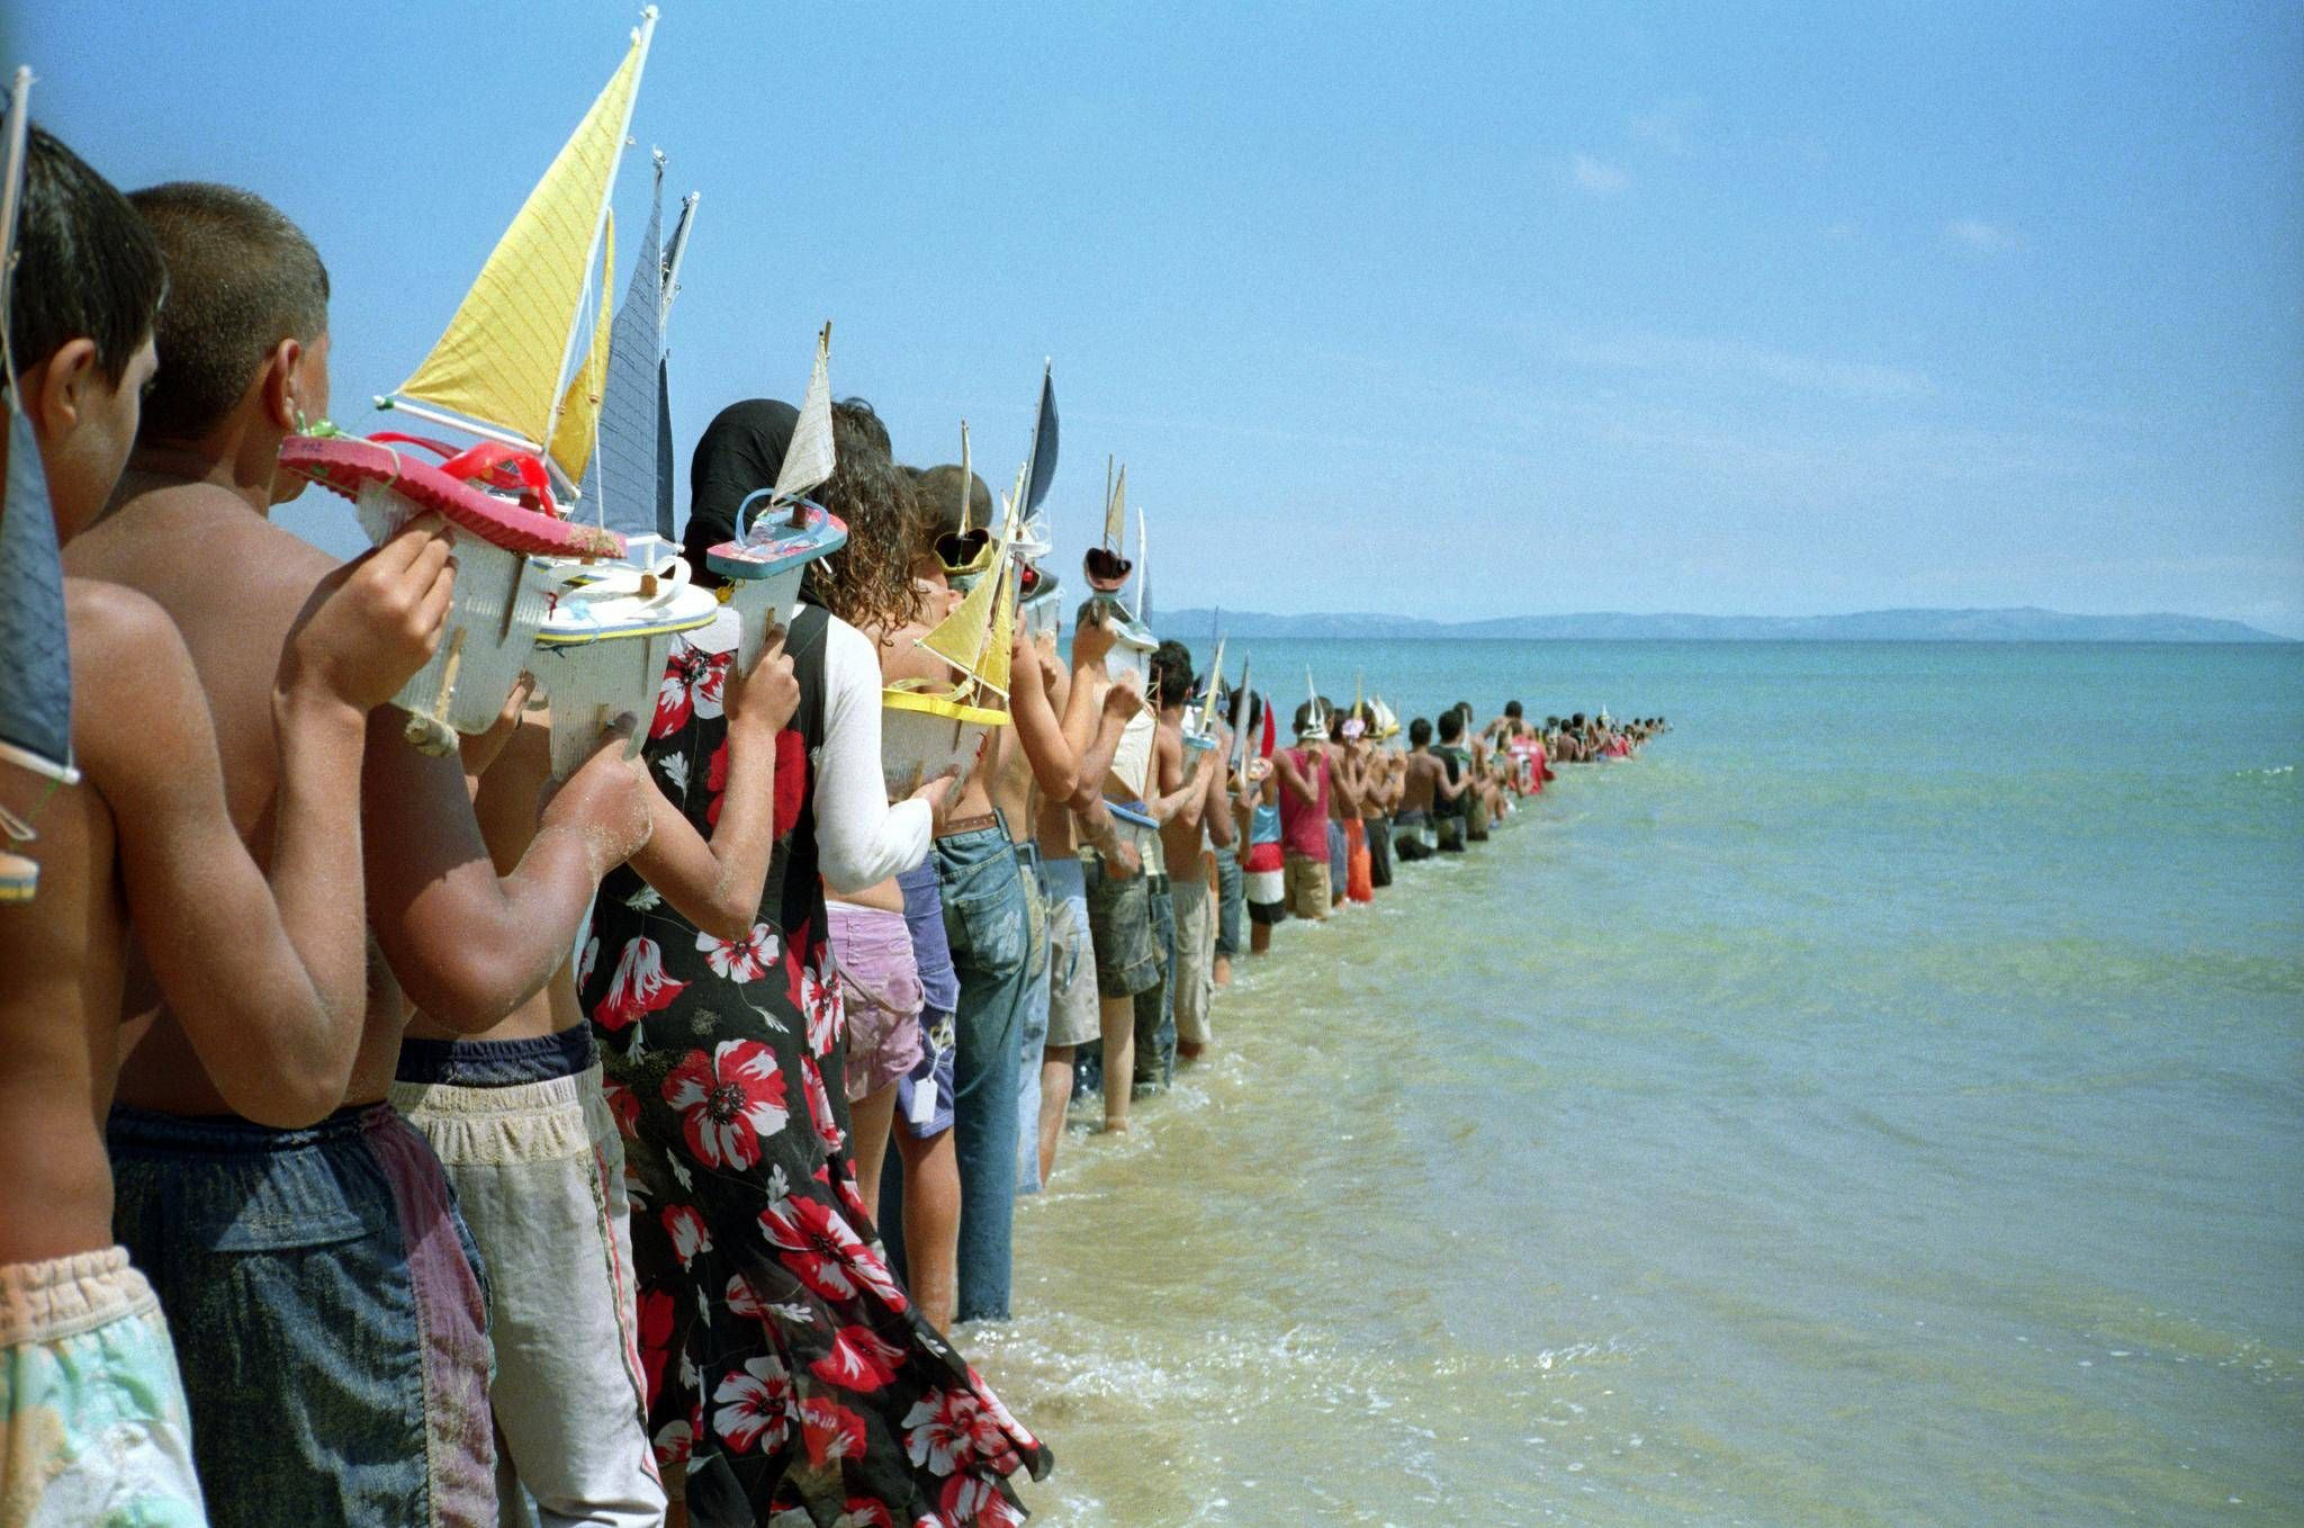 A line of people holding toy boats is seen going into the ocean.